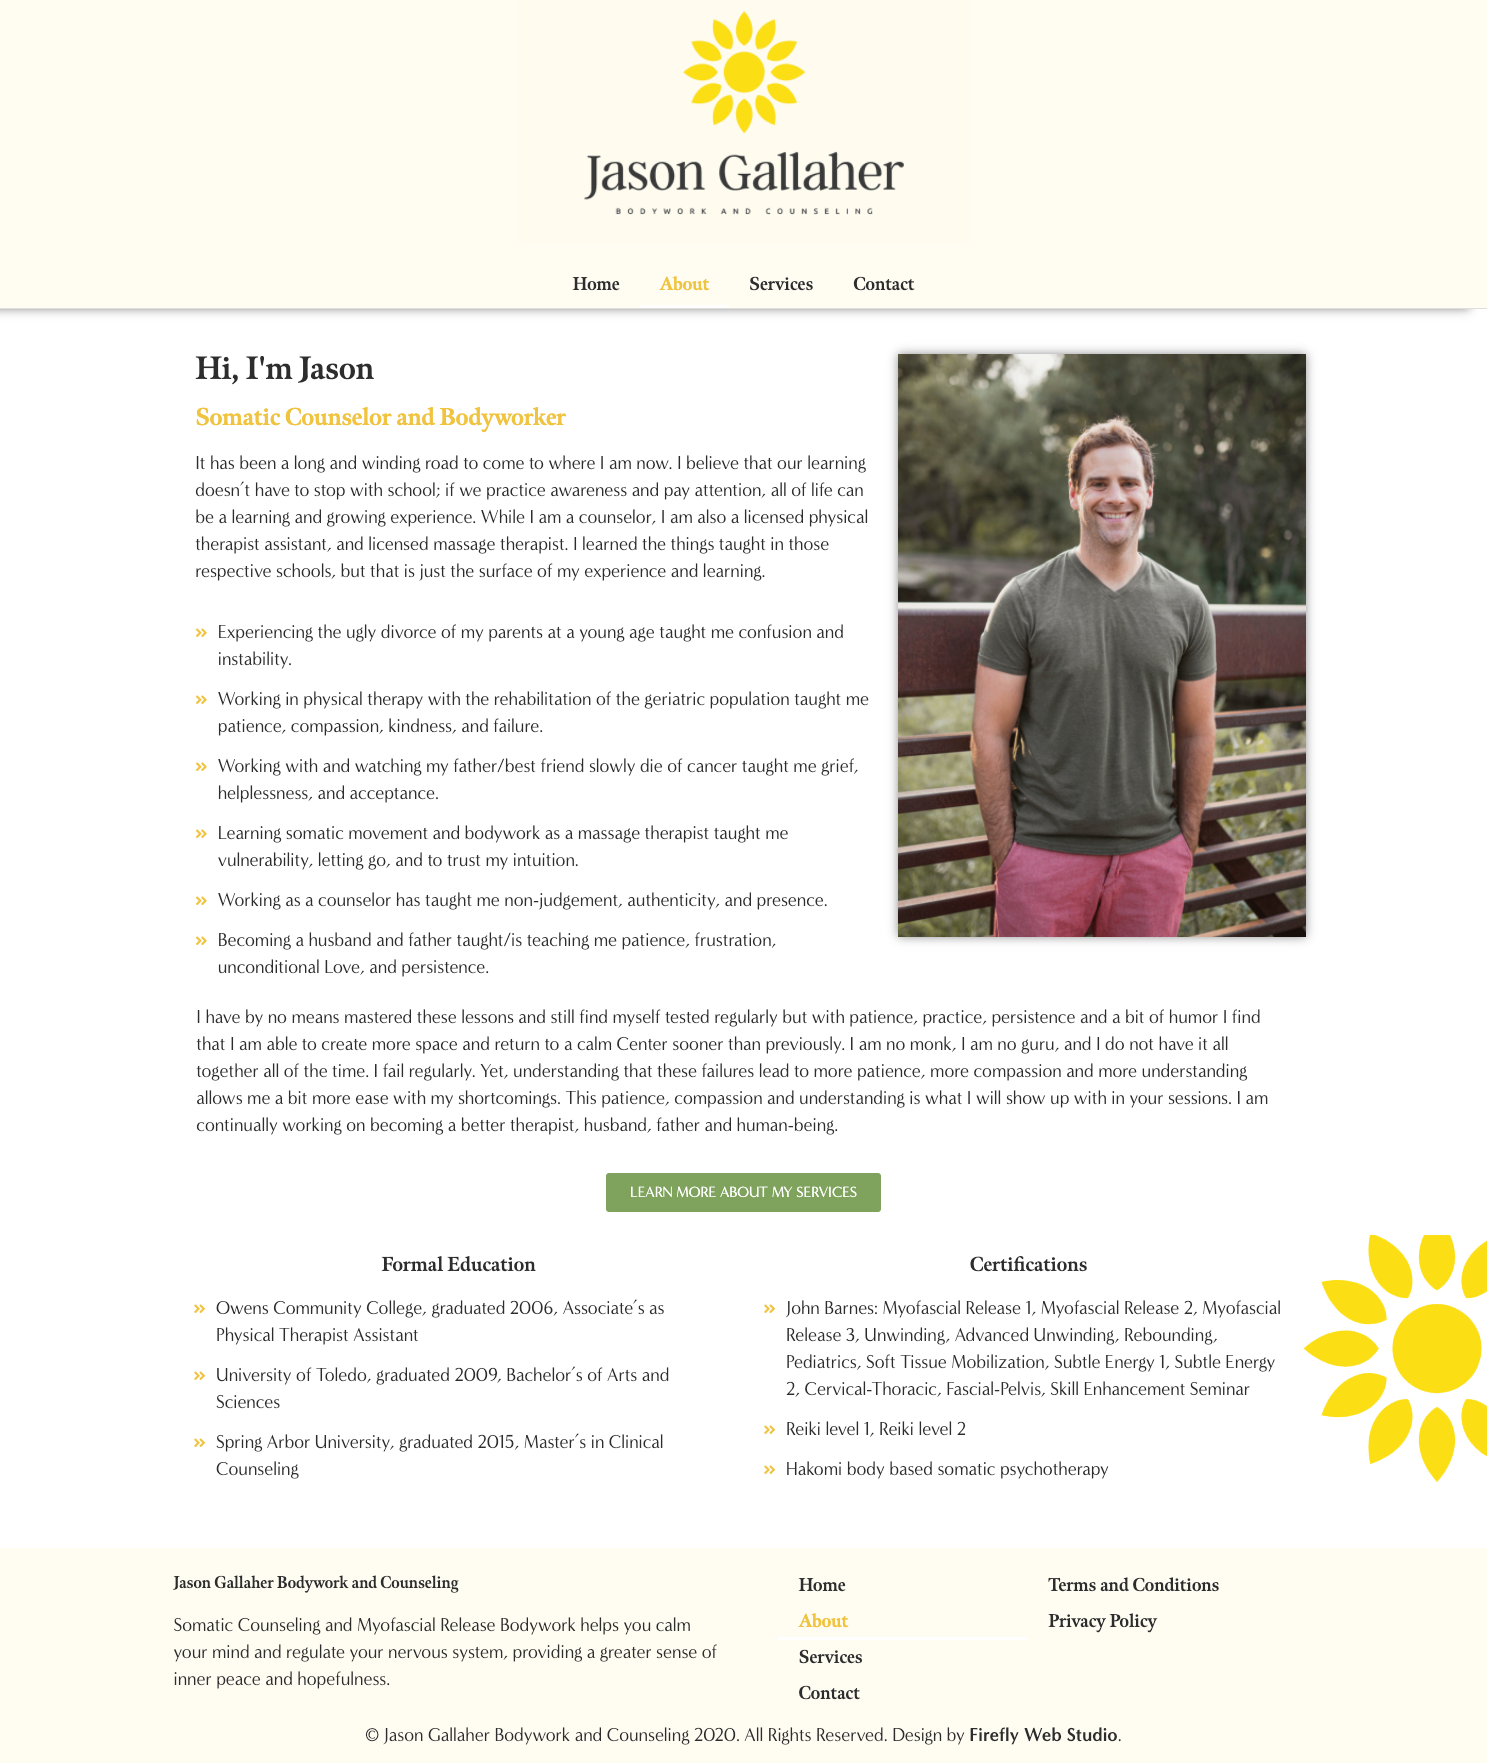 about jason gallaher - bodyworker and counselor